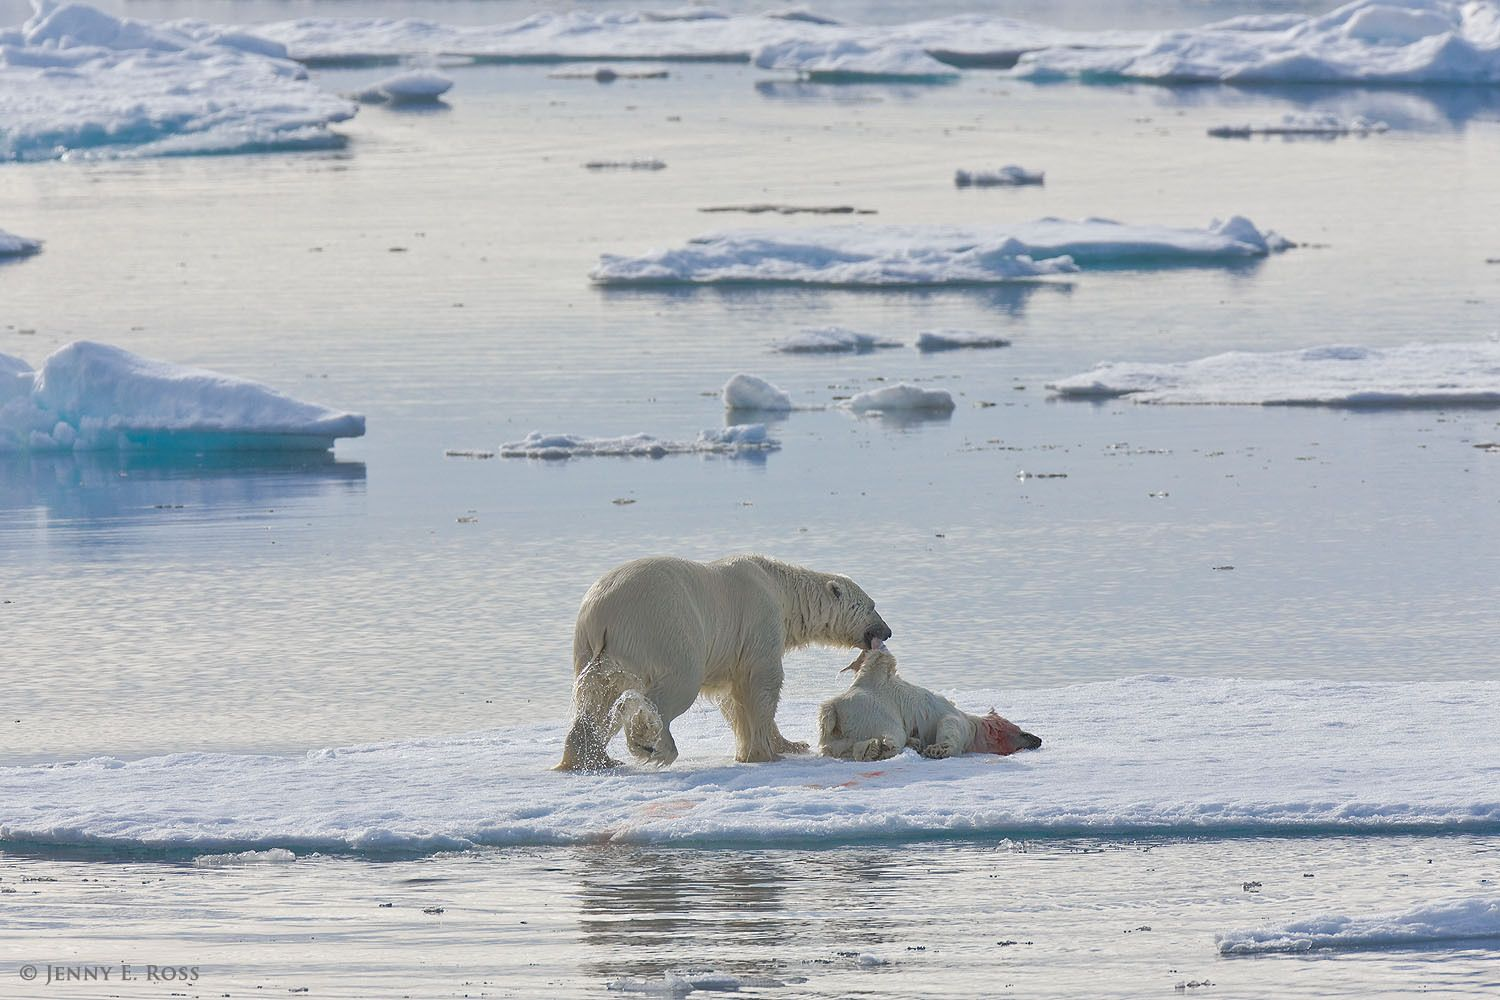 Polar bear infanticide and cannibalism on sea ice, Barents Sea, Svalbard Archipelgo, Norway.